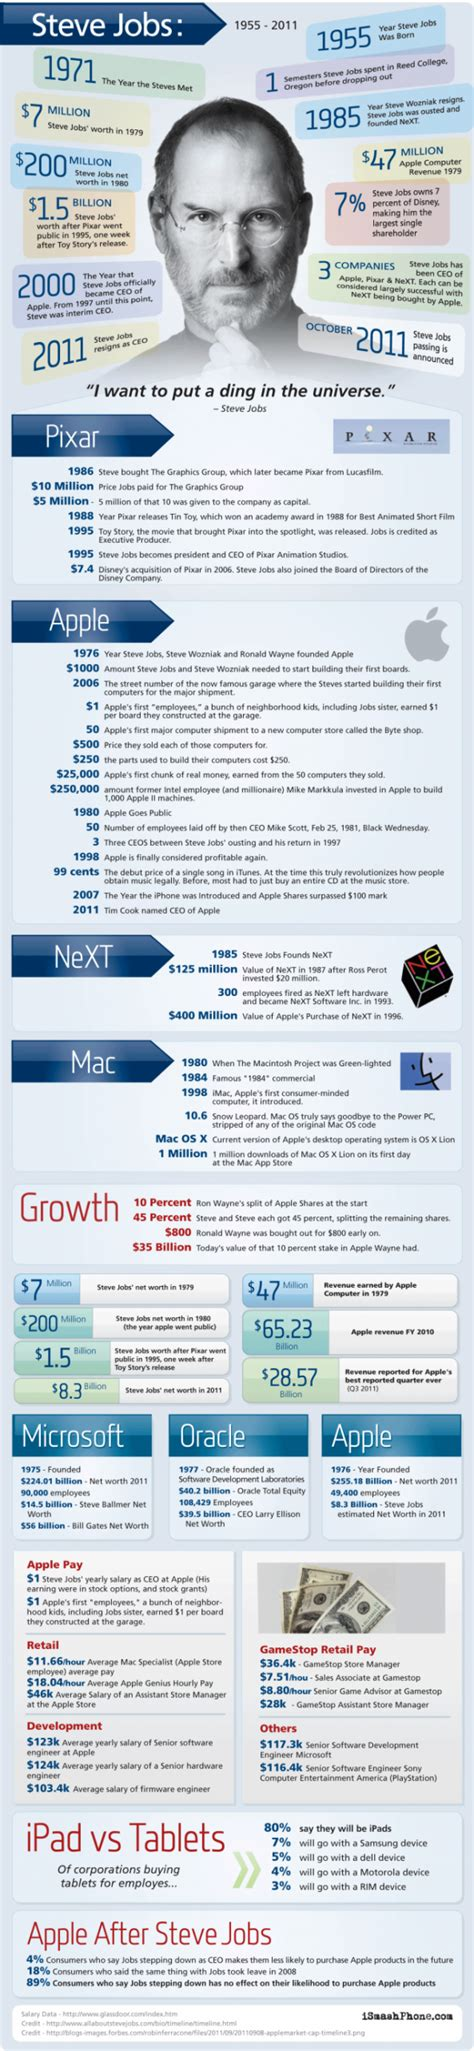 life of steve jobs infographic steve jobs career by the numbers infographic